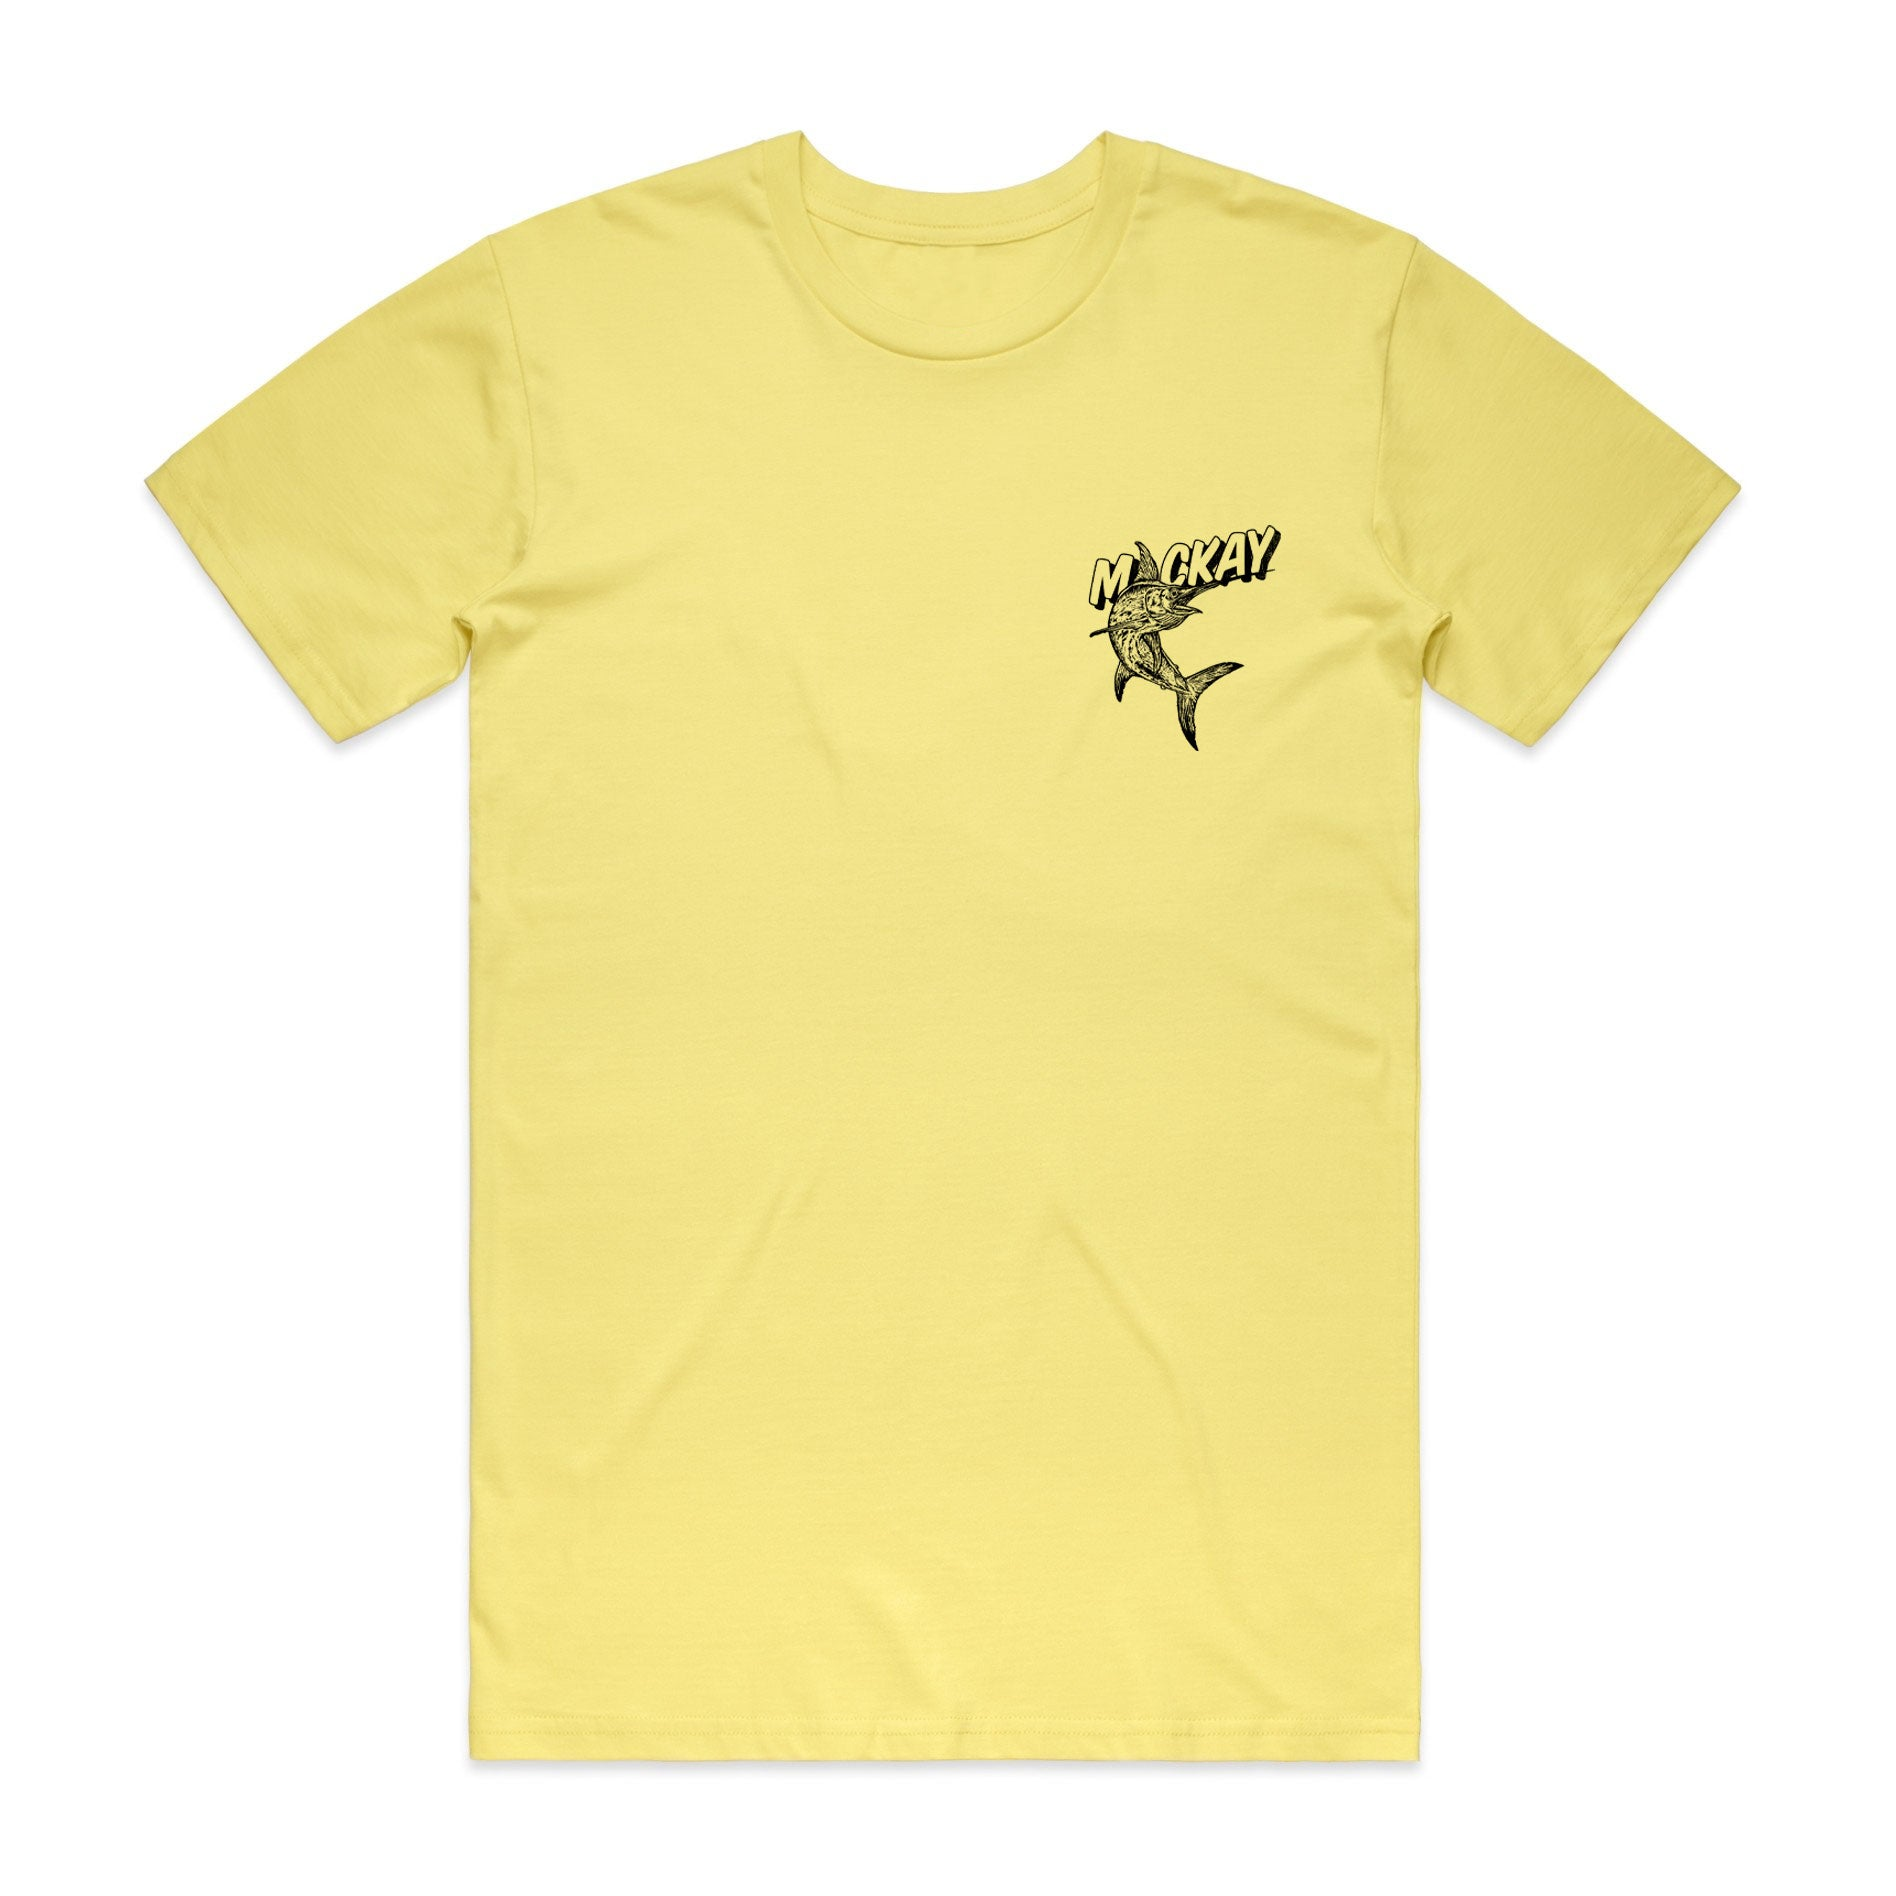 Mackay Tee - Lemon